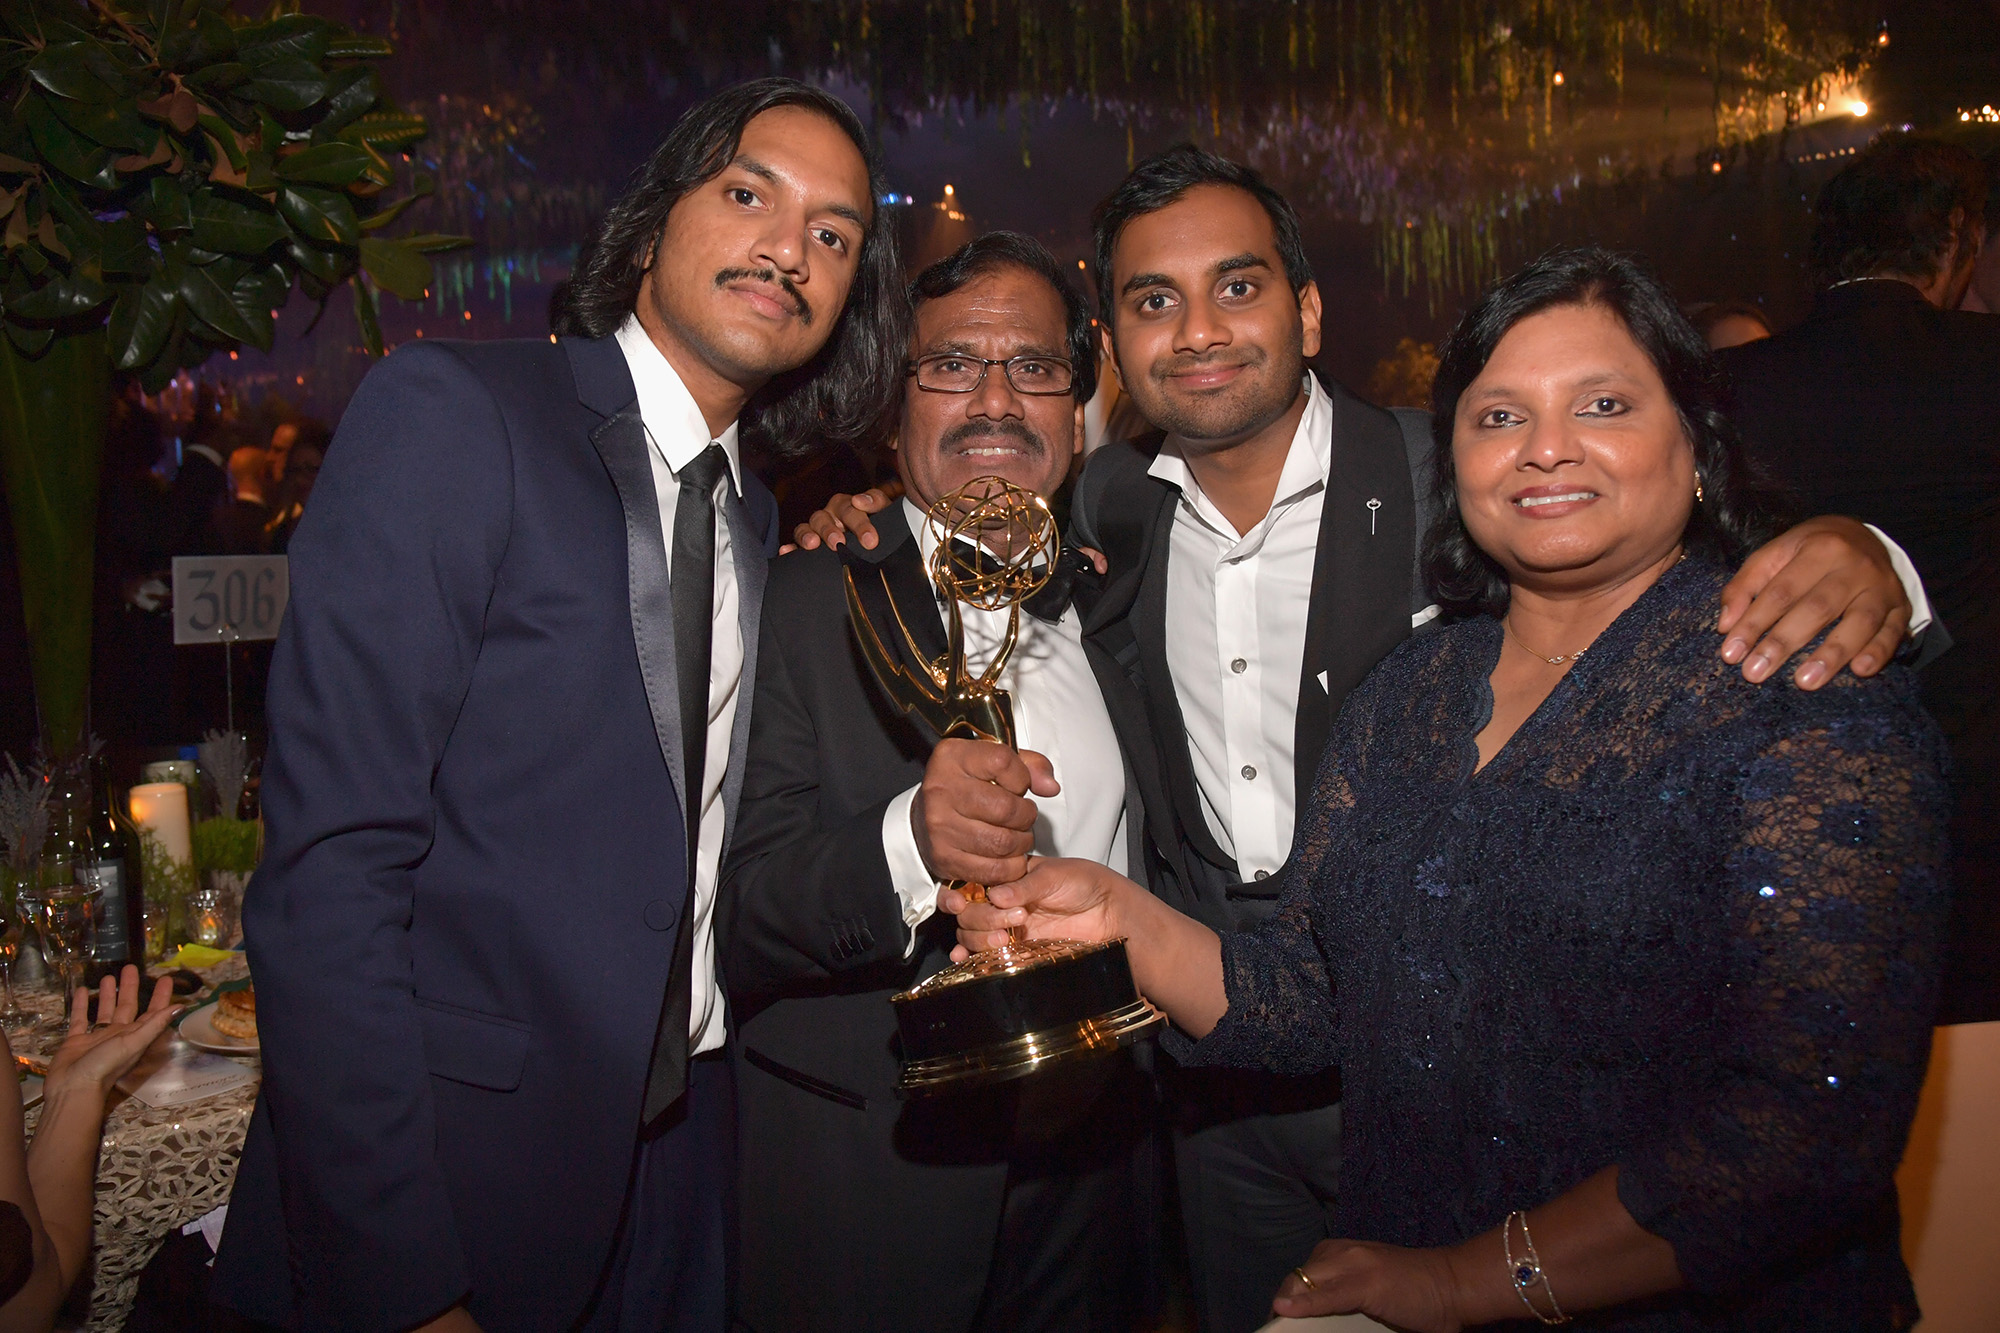 Actor/writer Aziz Ansari accompanied by his brother Aniz Ansari and parents Shoukath Ansari and Fatima Ansari, attends the 68th Annual Primetime Emmy Awards Governors Ball at Microsoft Theater on September 18, 2016 in Los Angeles, California.  (Photo by Lester Cohen/WireImage)